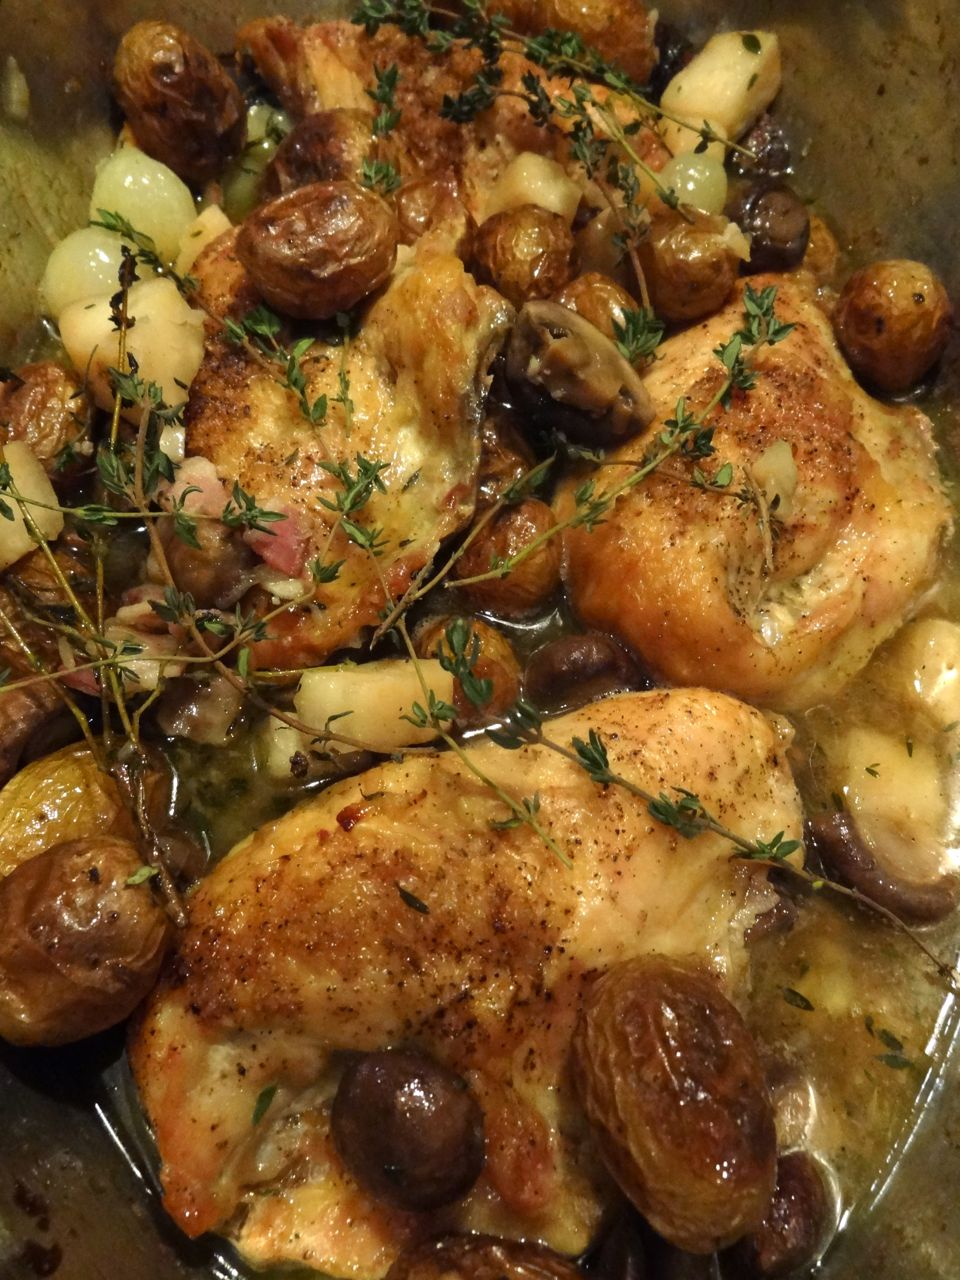 Scrumpdillyicious: Roast Chicken Grand-Mère with Celeriac & Thyme